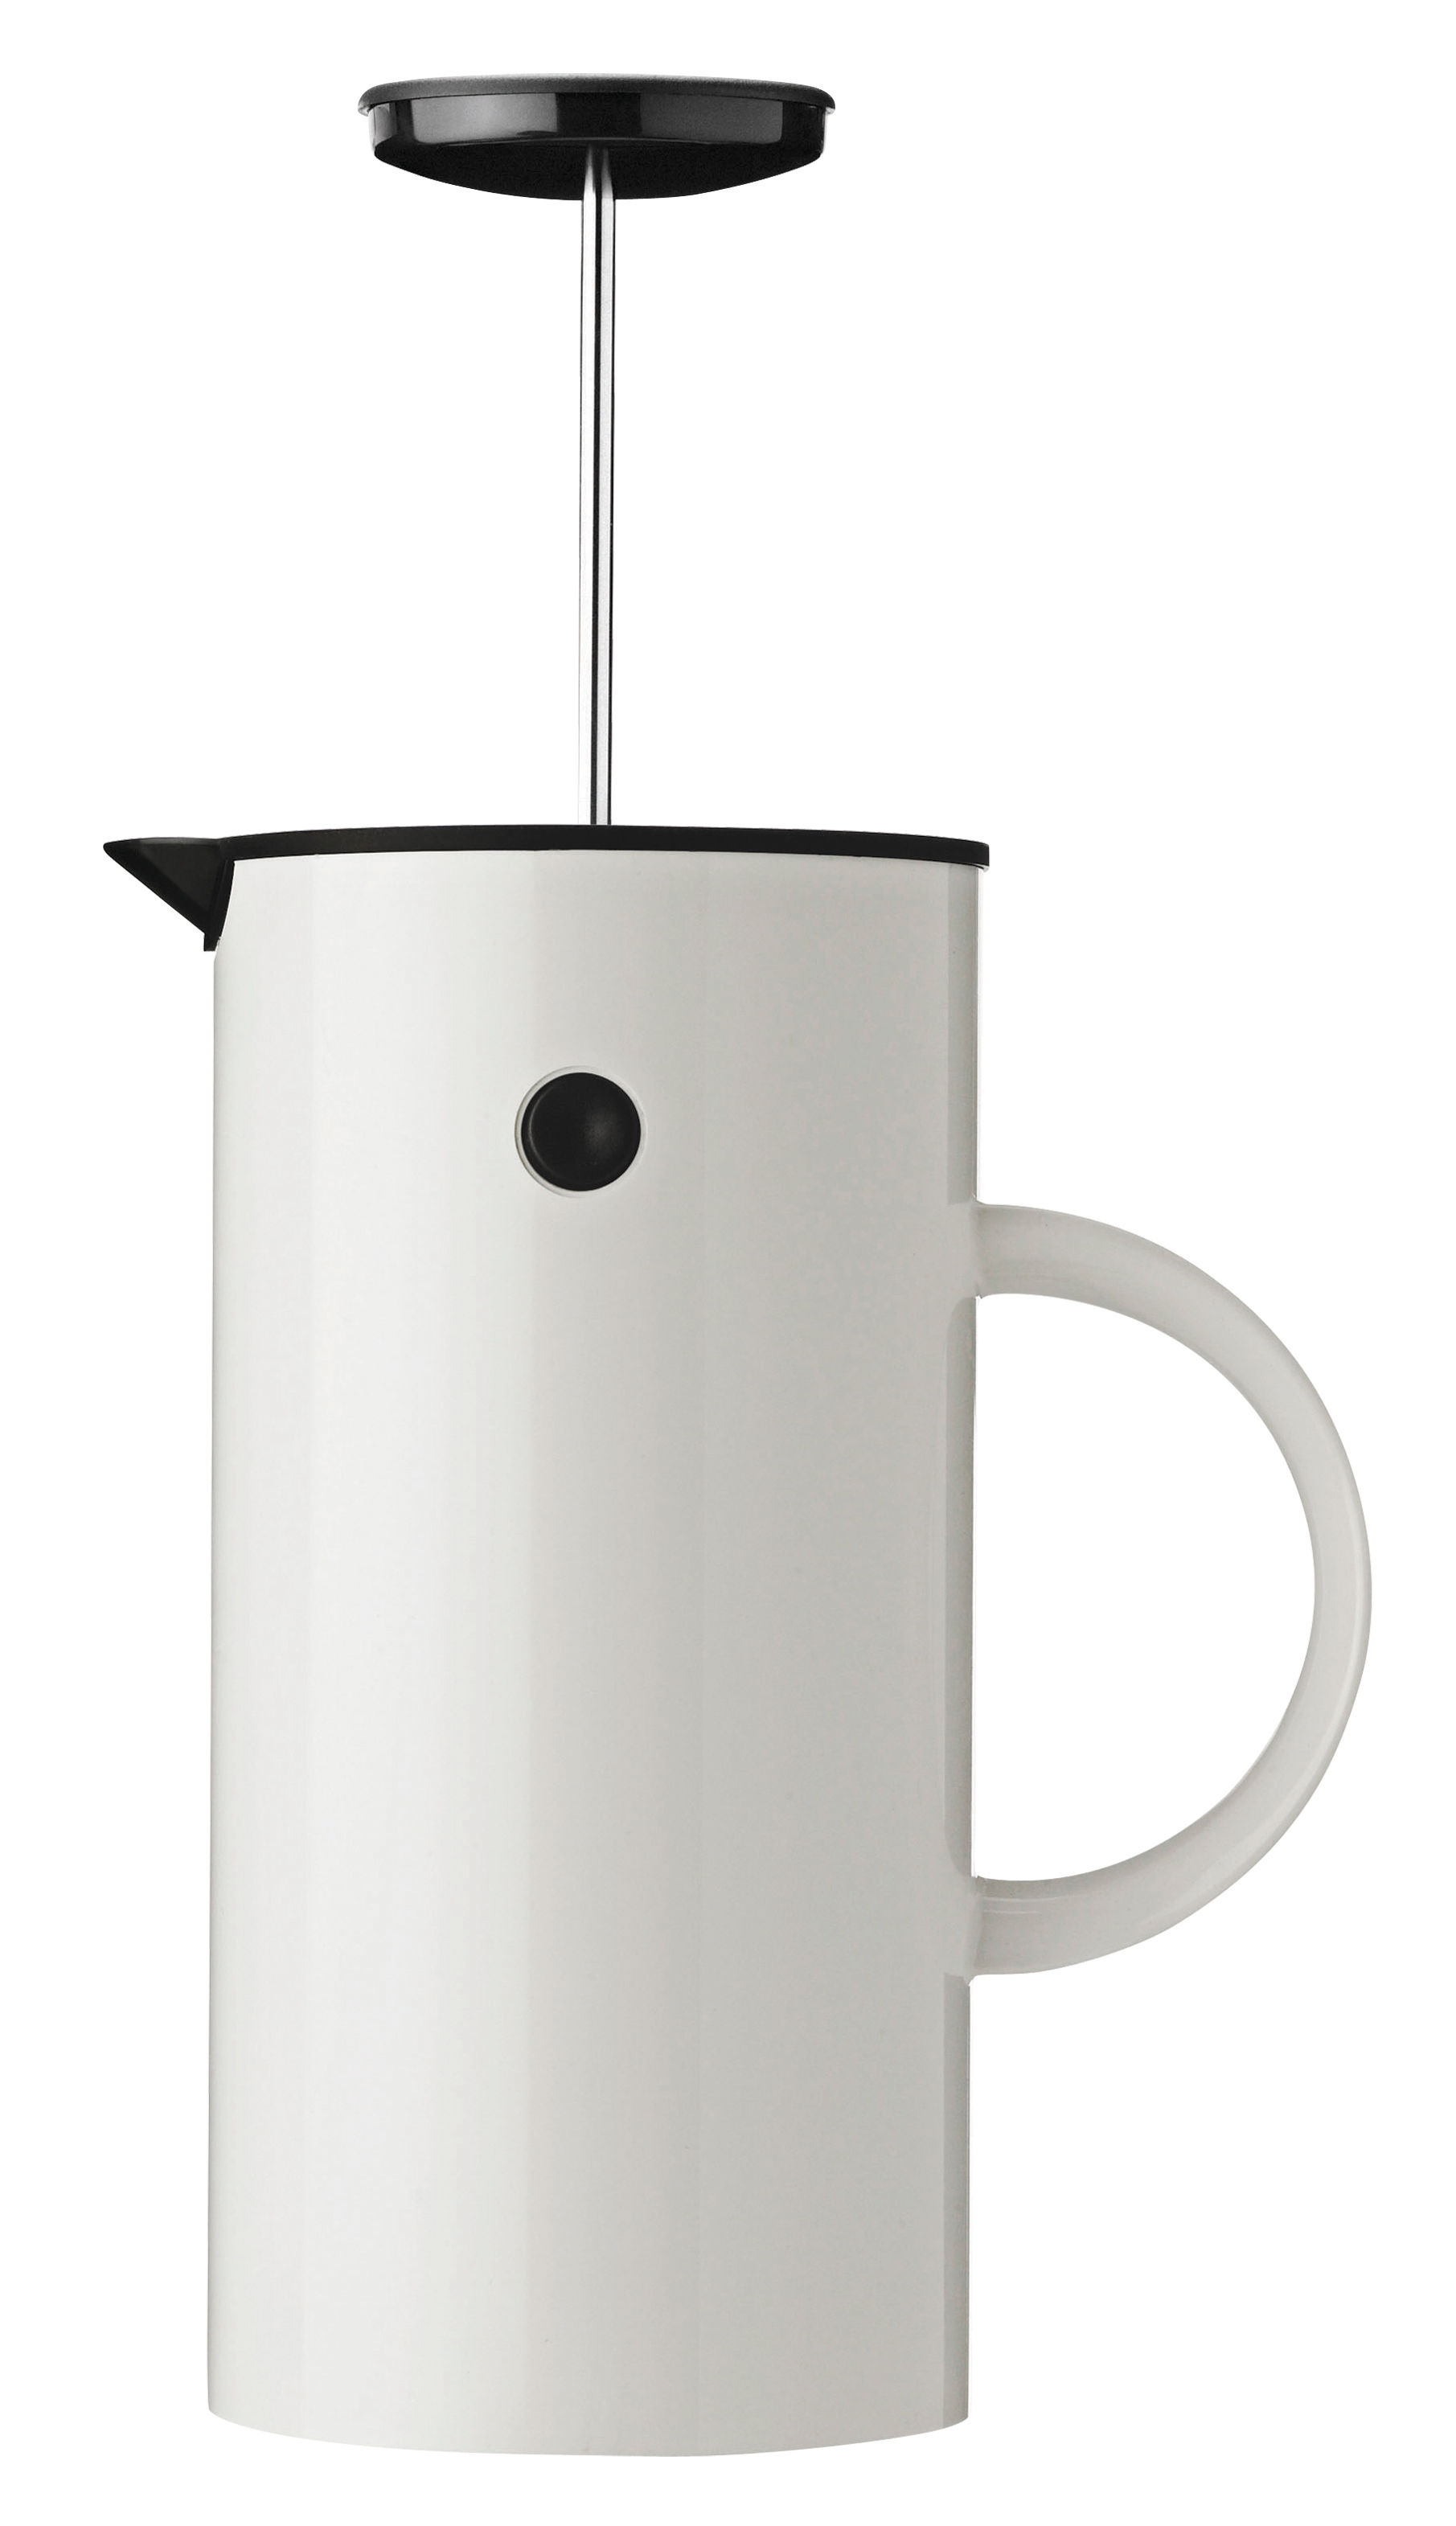 Kitchenware - Coffee Makers - Classic Coffee maker - 8 cups by Stelton - White - ABS, Polypropylene, Stainless steel